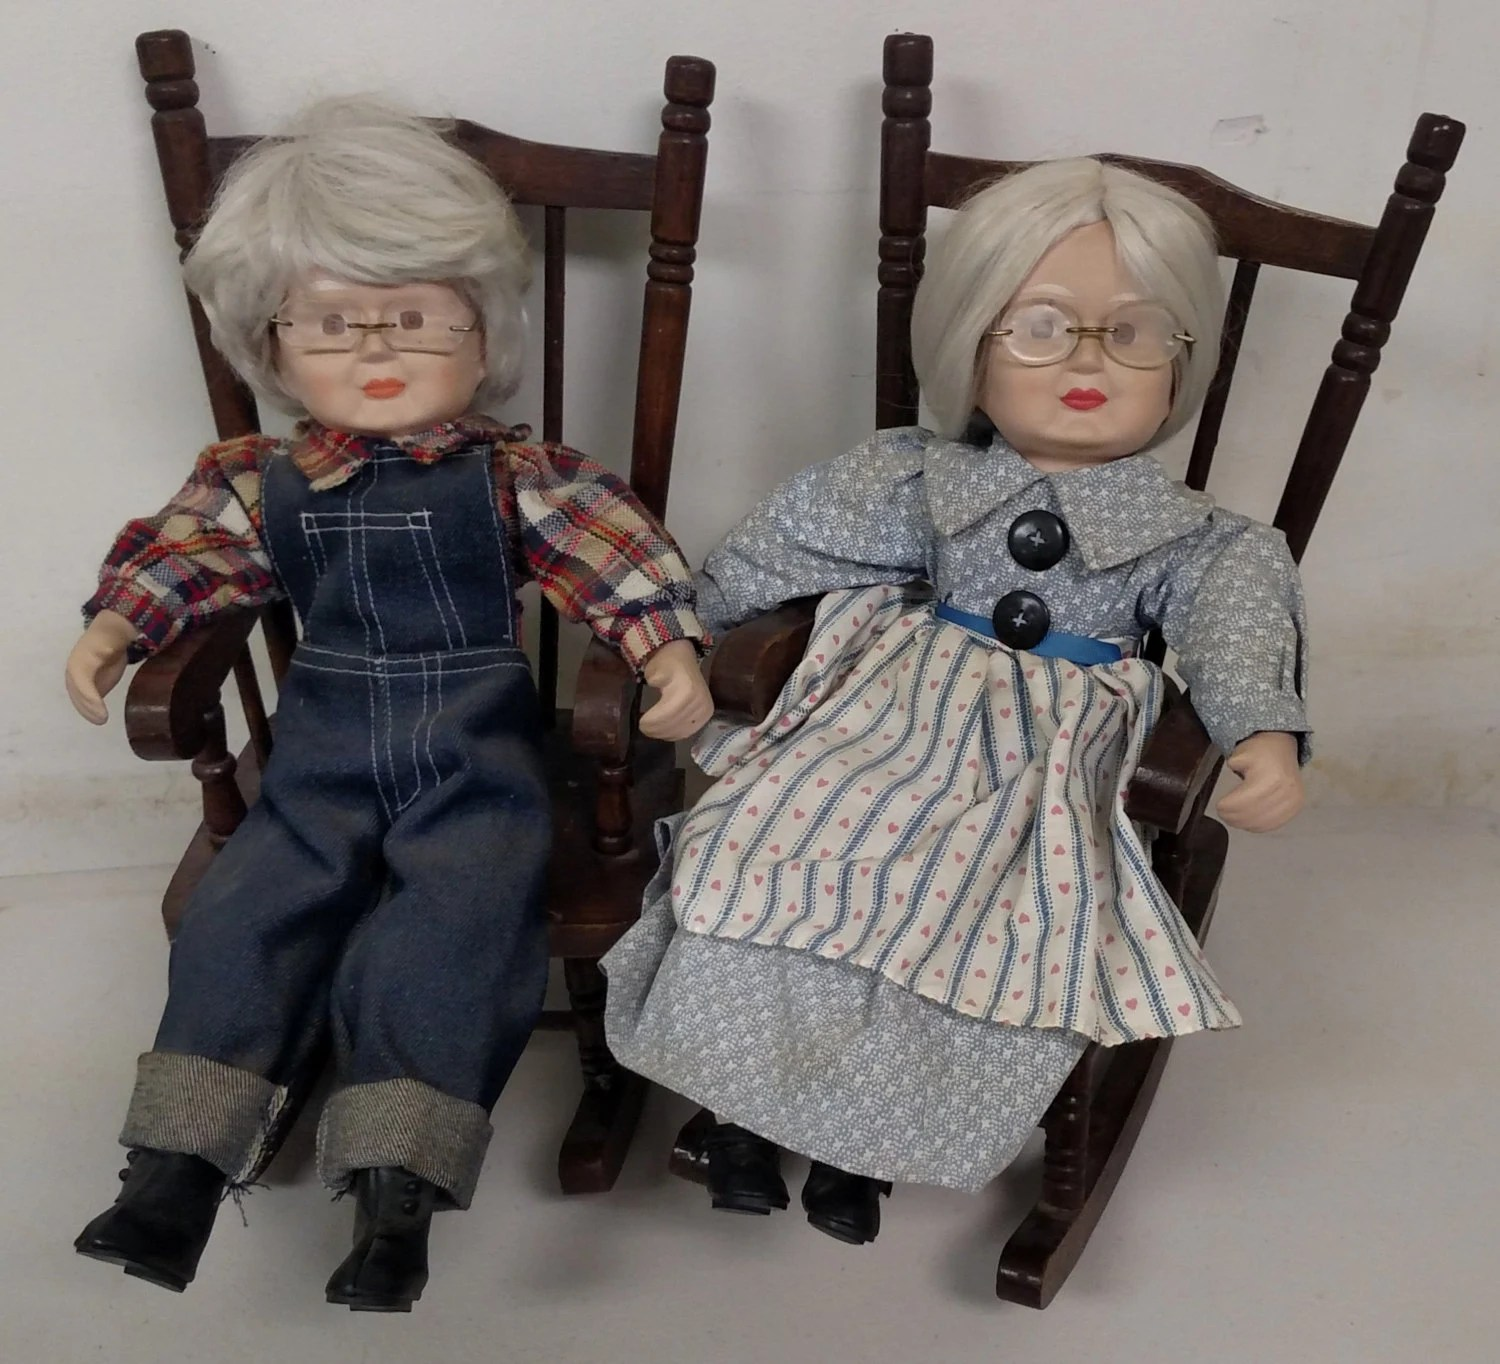 grandma rocking chair cover seat corners and grandpa porcelain dolls on wooden chairs